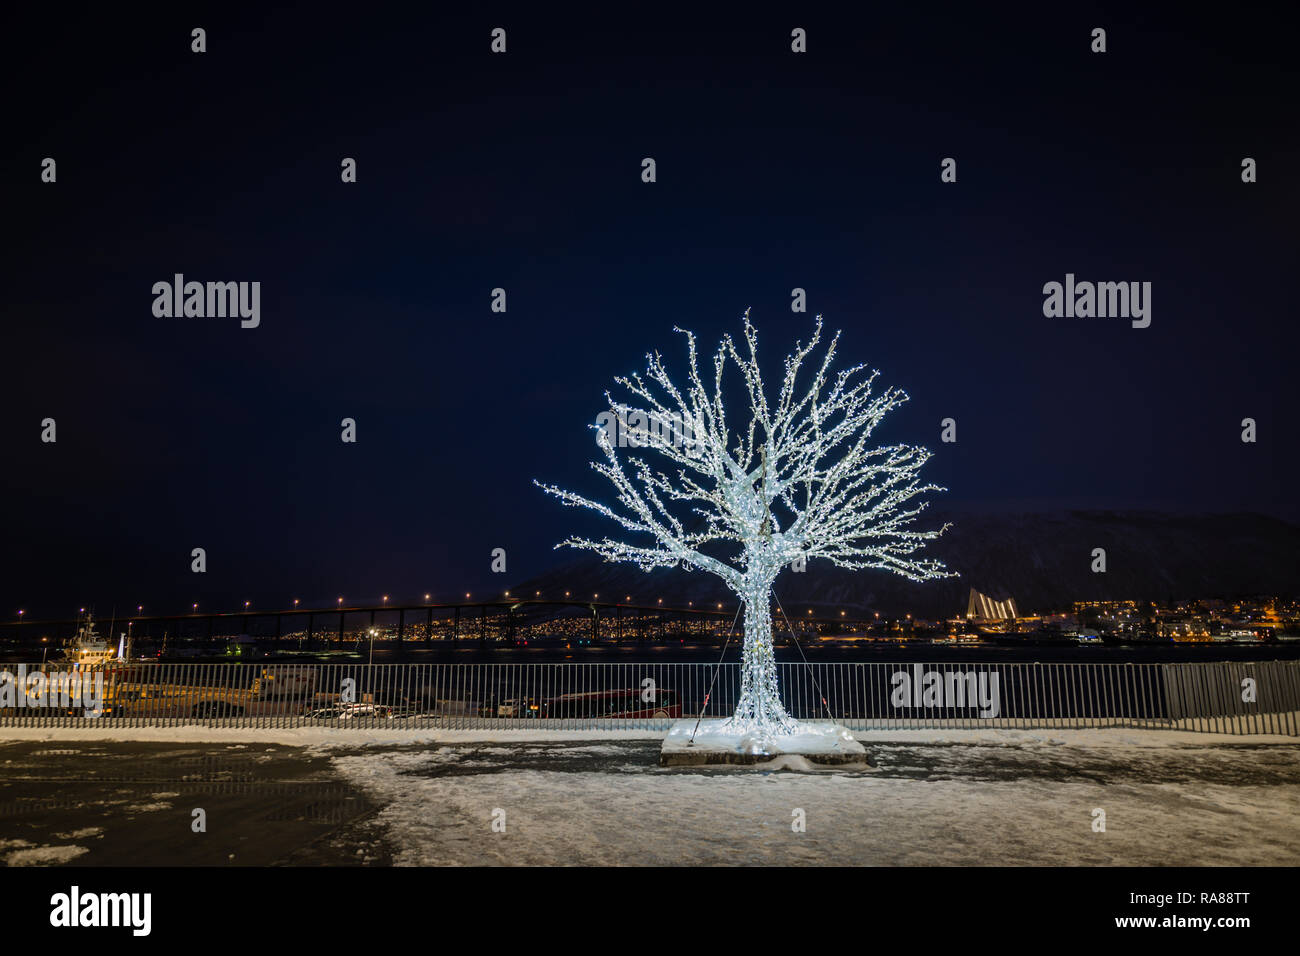 Festive Illuminated tree, Tromso, Norway. Stock Photo